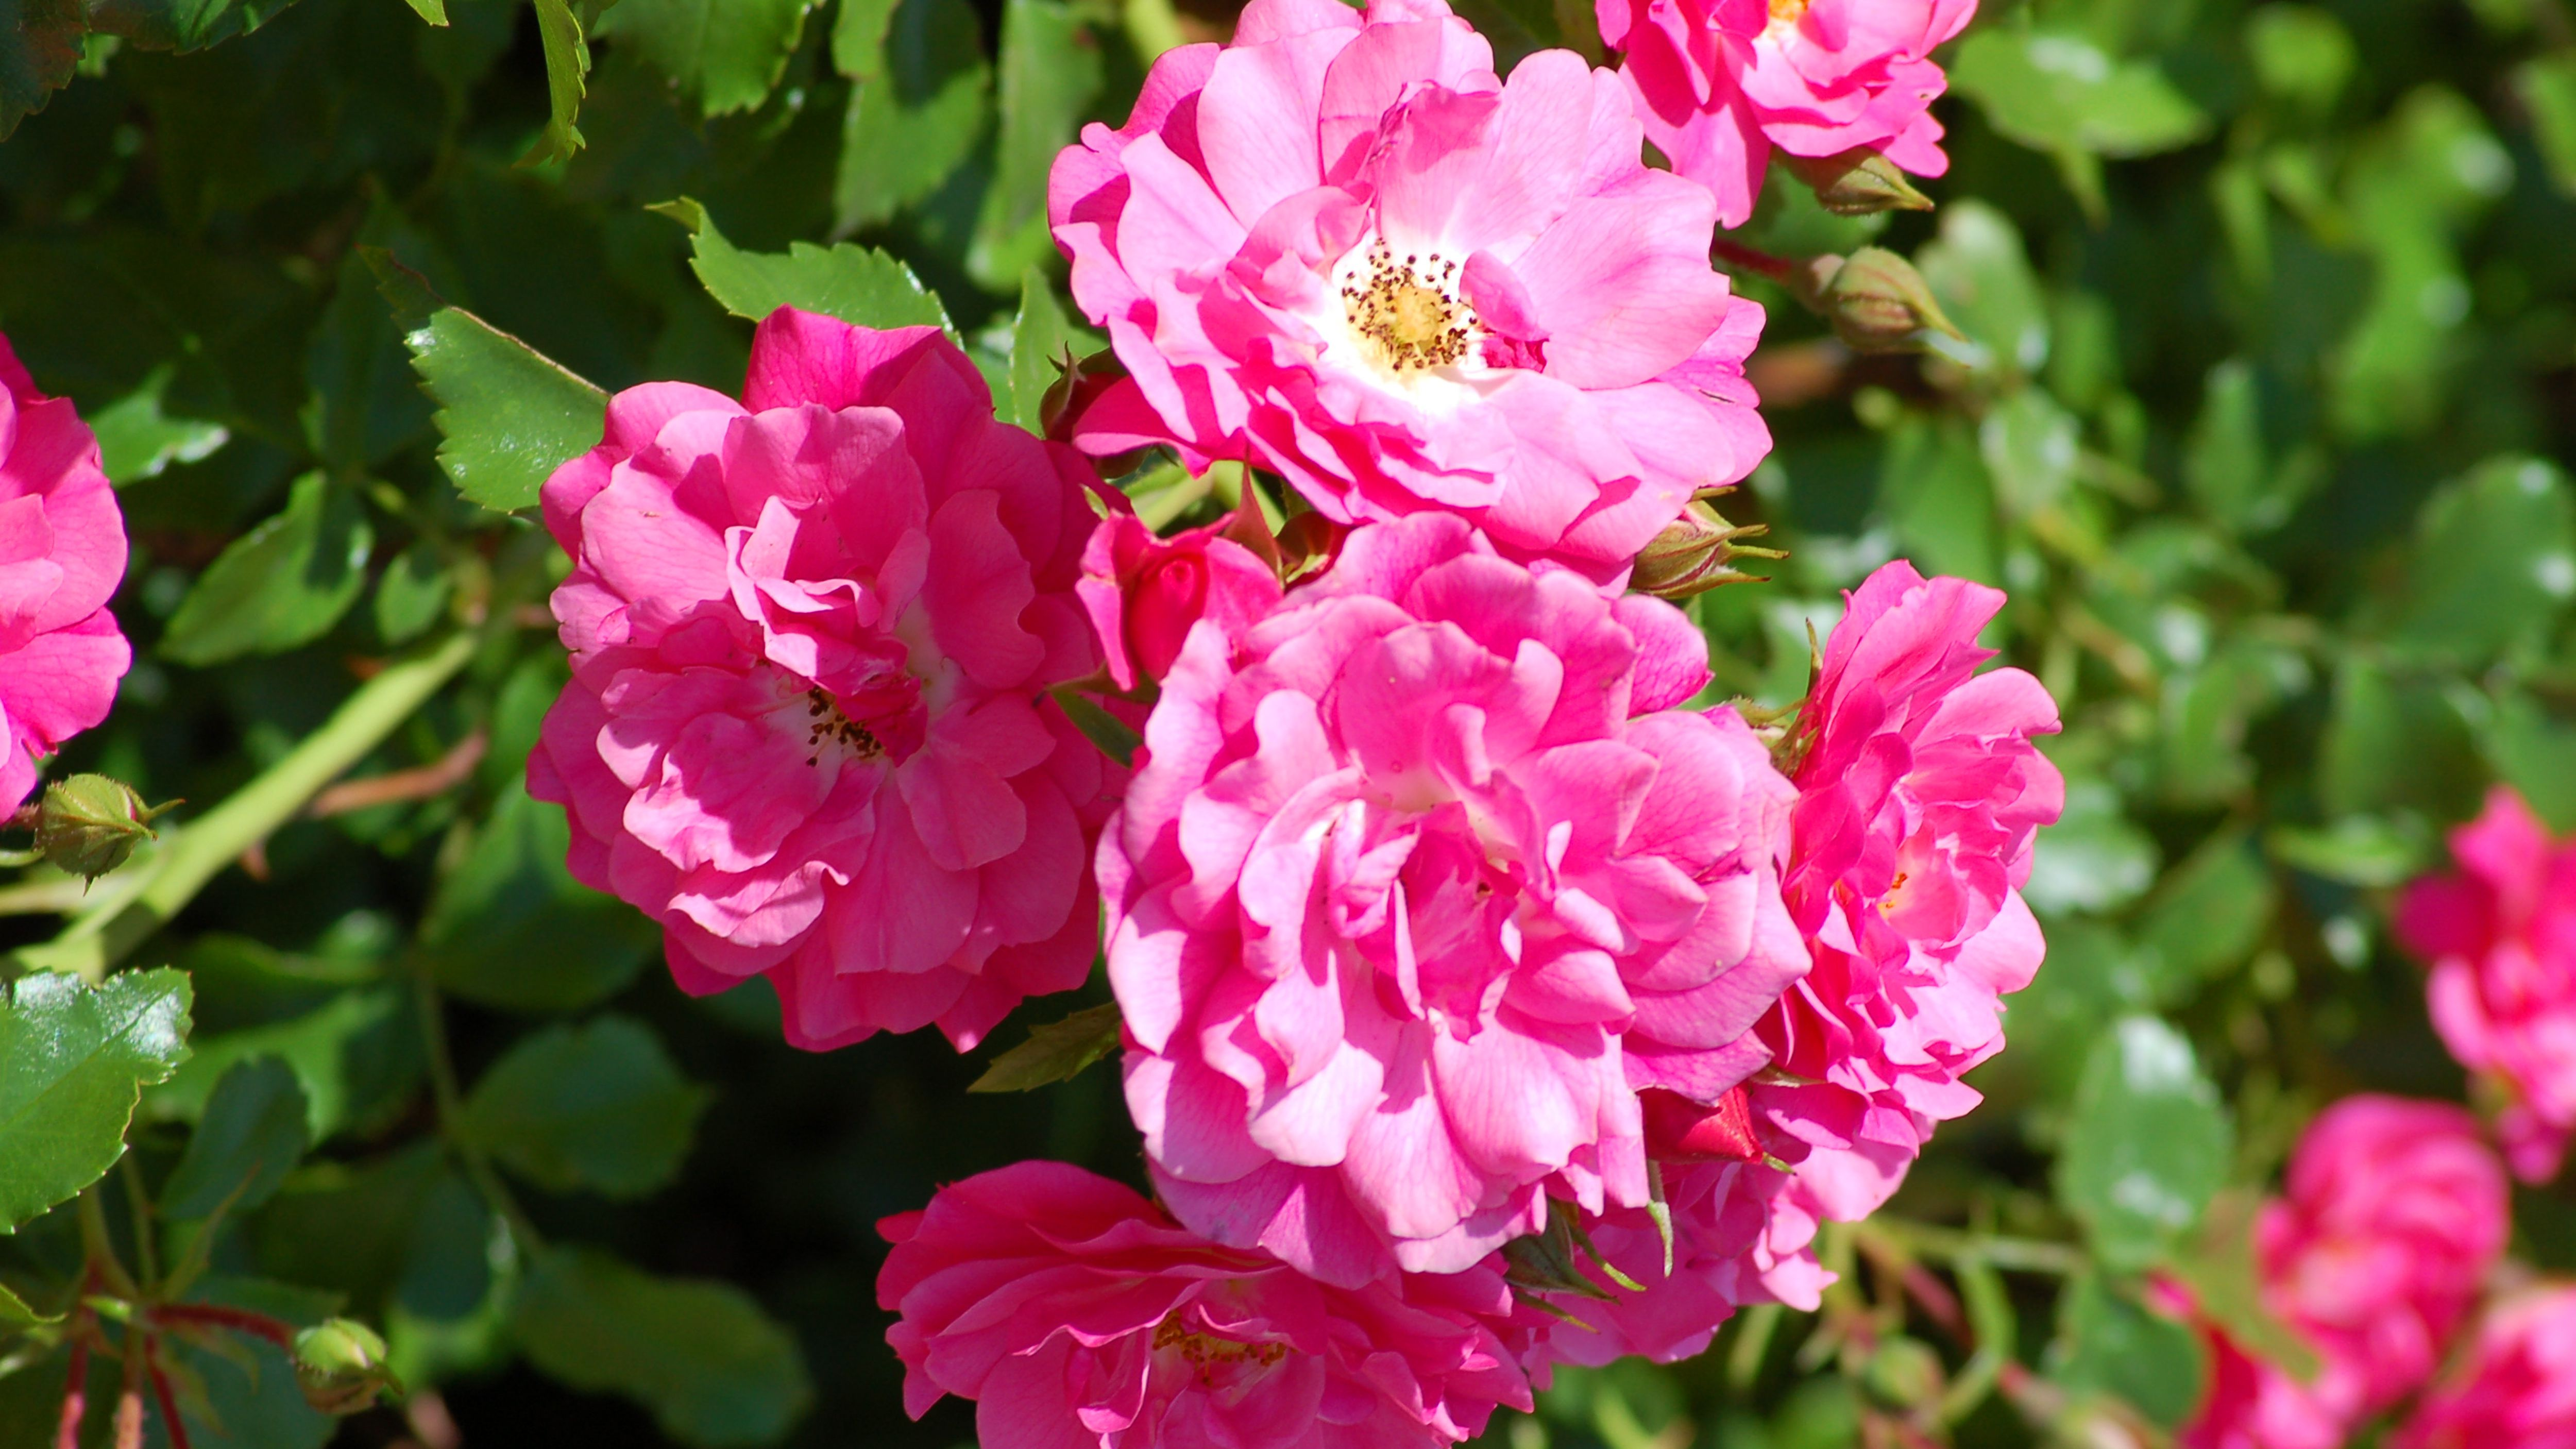 How To Grow And Care For Rose Bushes